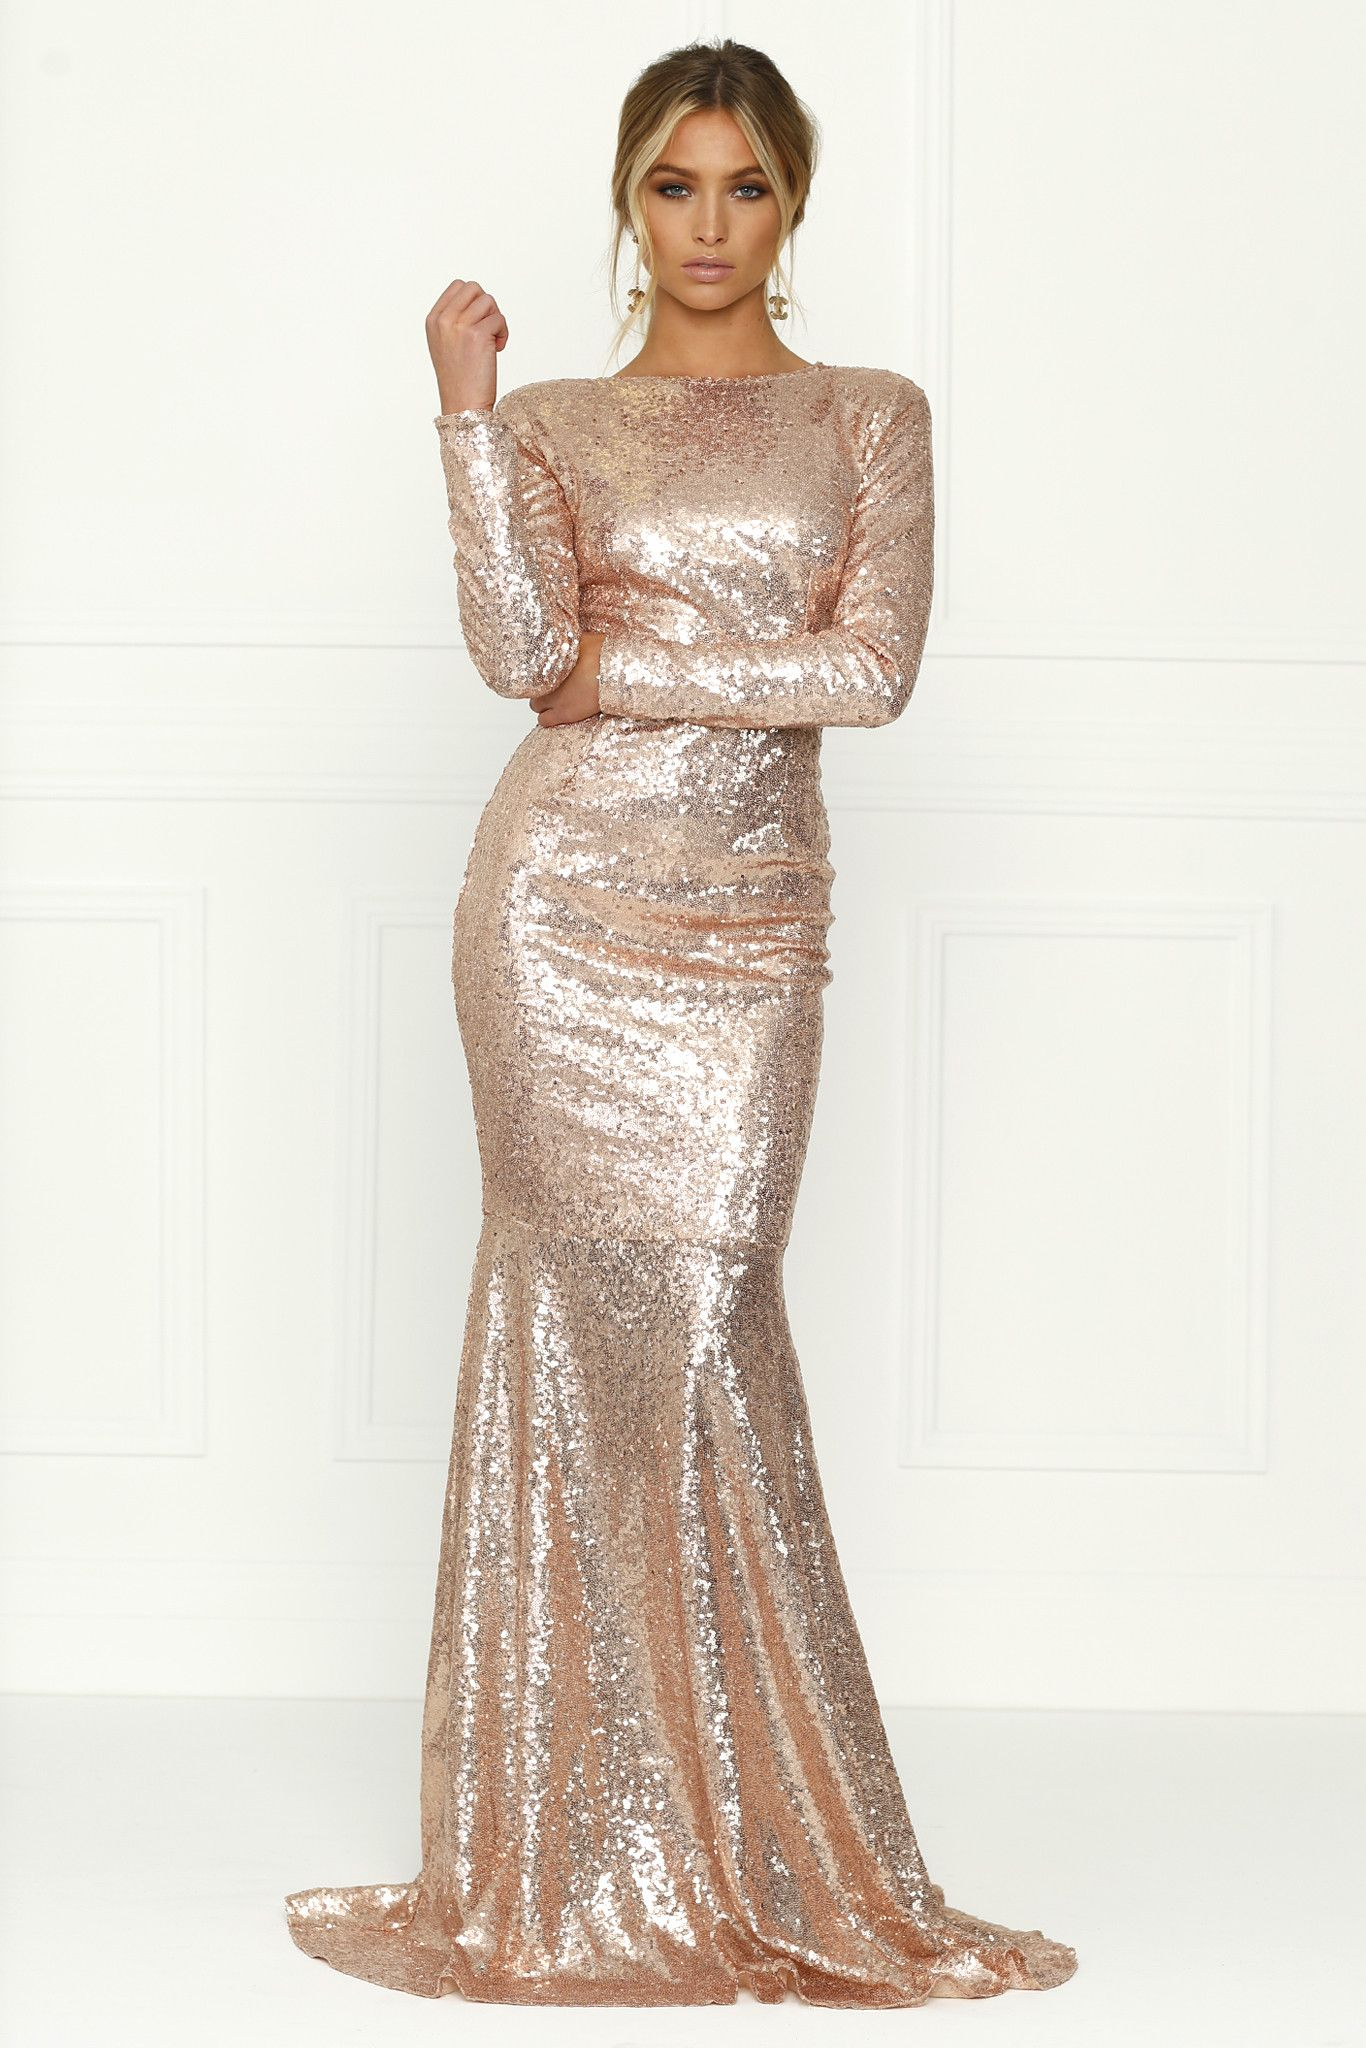 Honey couture viva rose gold sequin long sleeve maxi formal gown